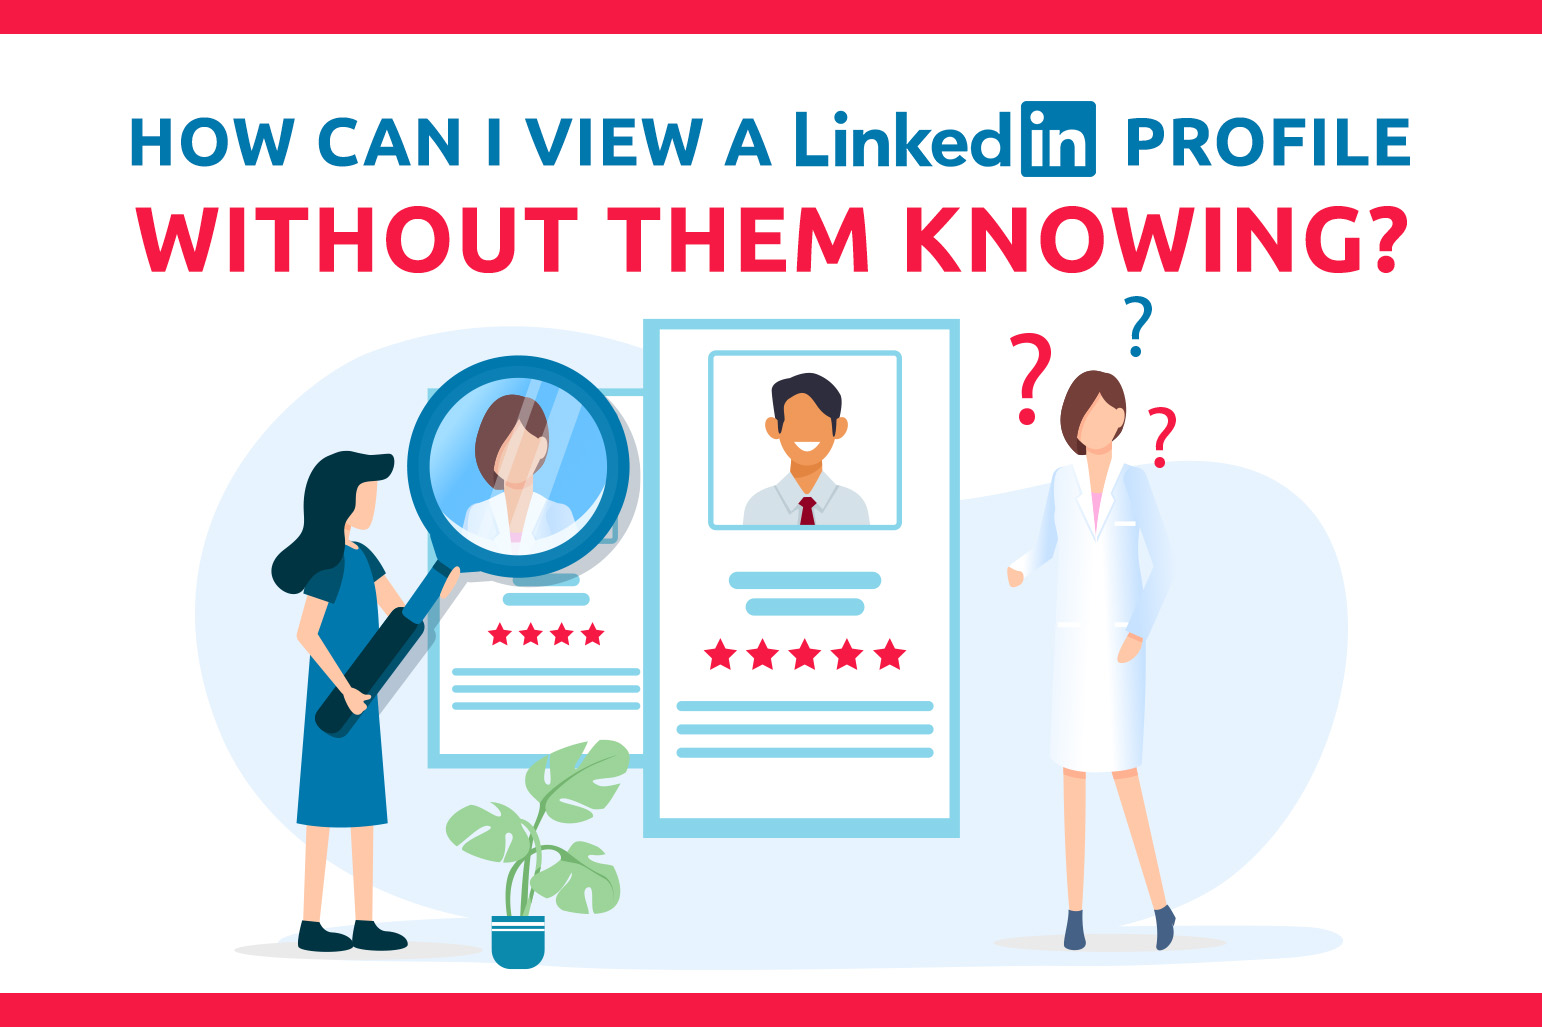 How Can I View A LinkedIn Profile Without Them Knowing?